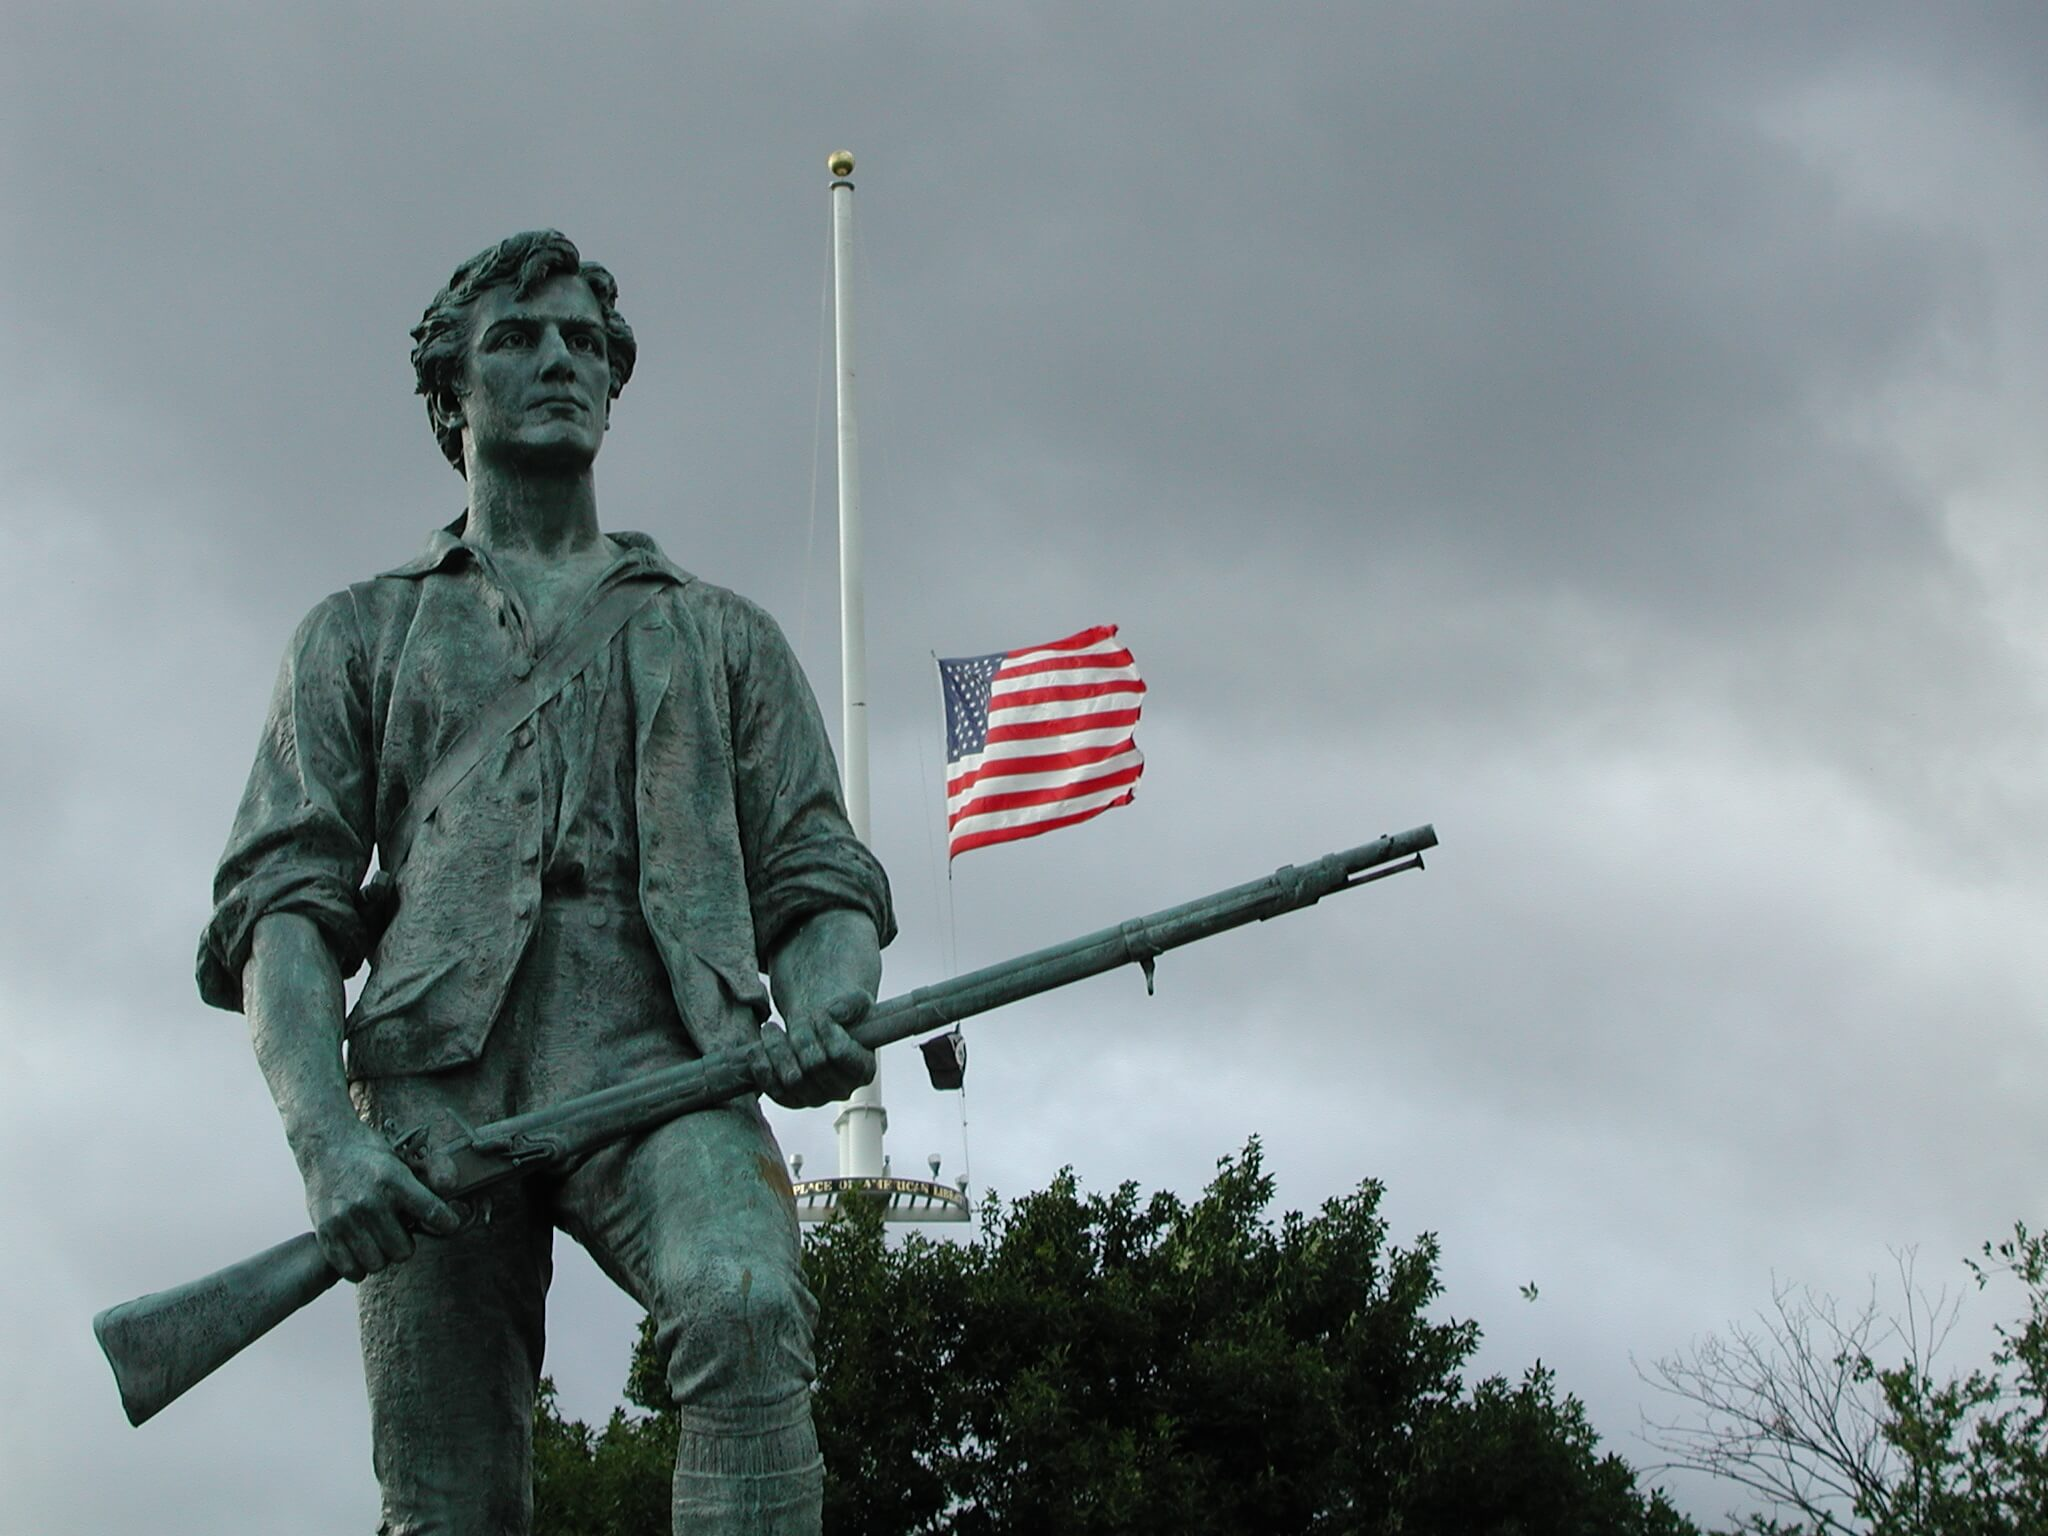 Minuteman sculpture by Henry Hudson Kitson stands in Minute Man National Historical Park in Massachusetts.